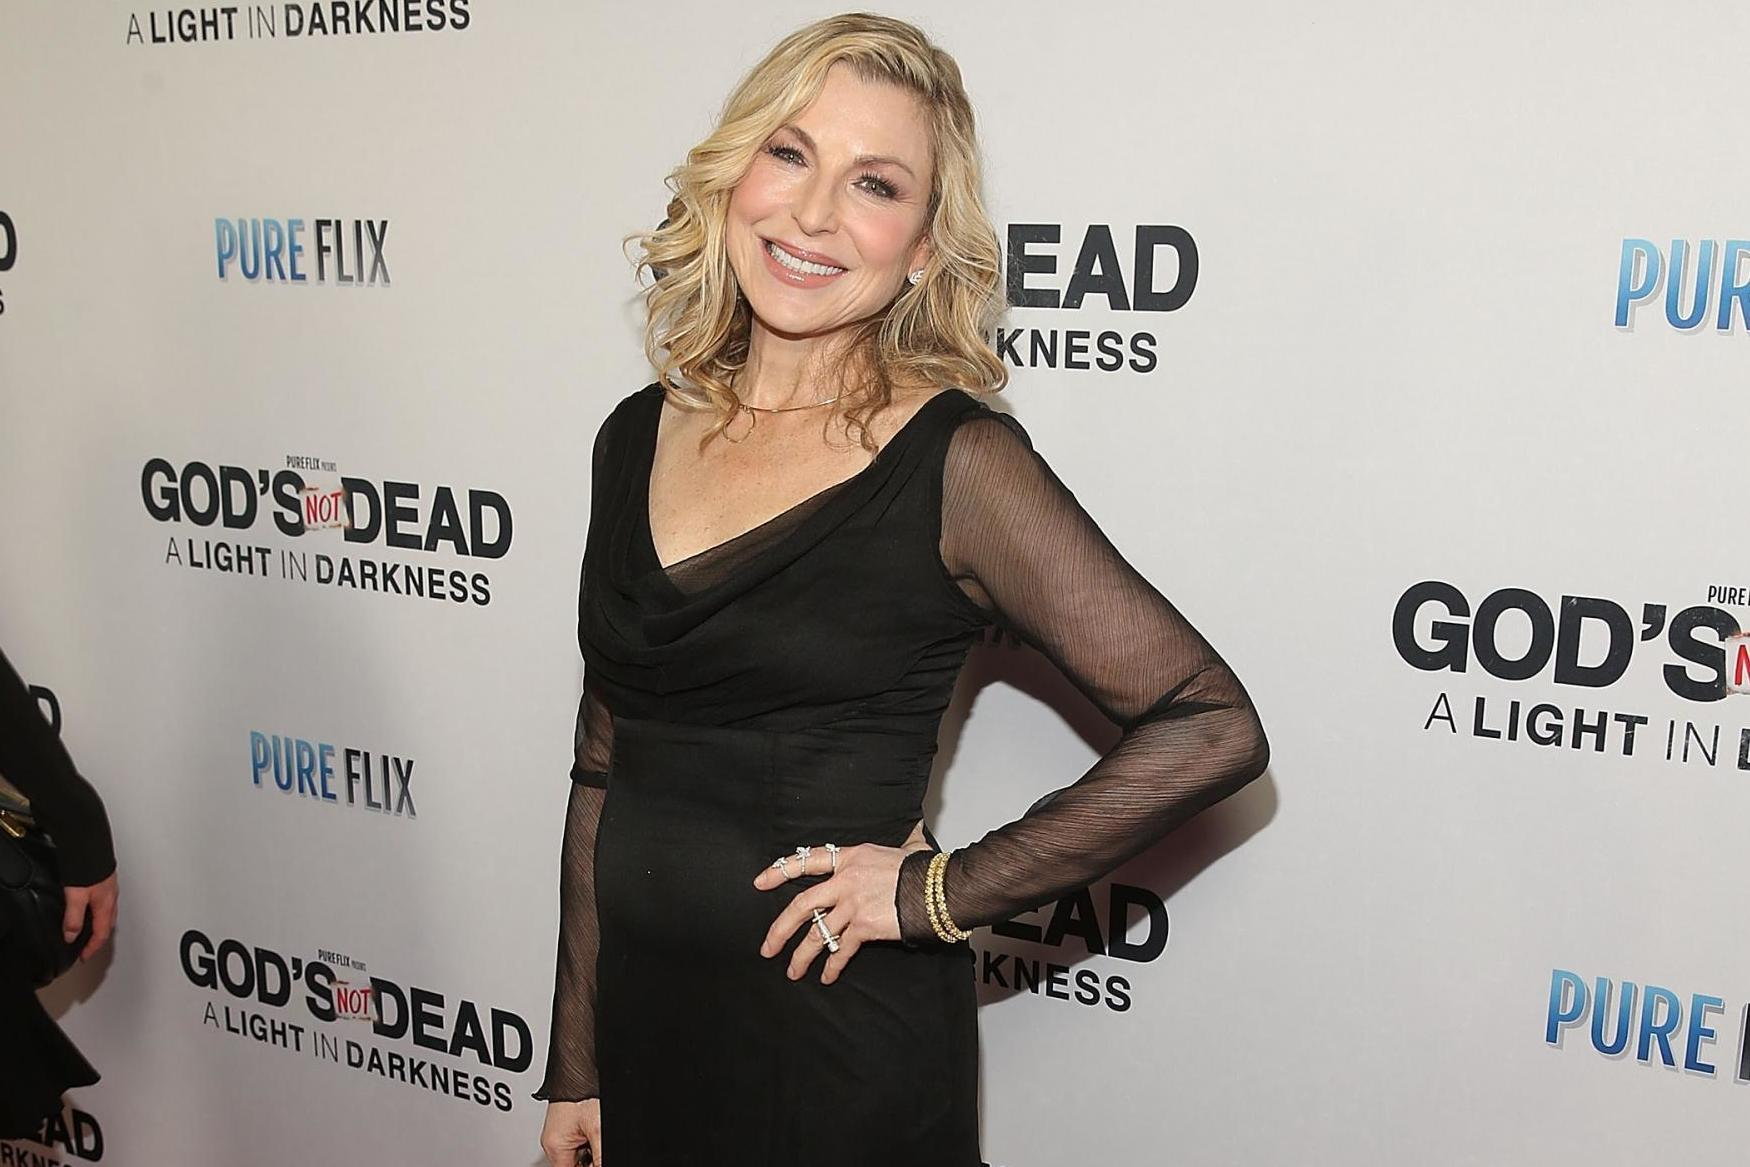 Tatum O'Neal shares photo of scars and bruises from rheumatoid arthritis: 'It's been very difficult'